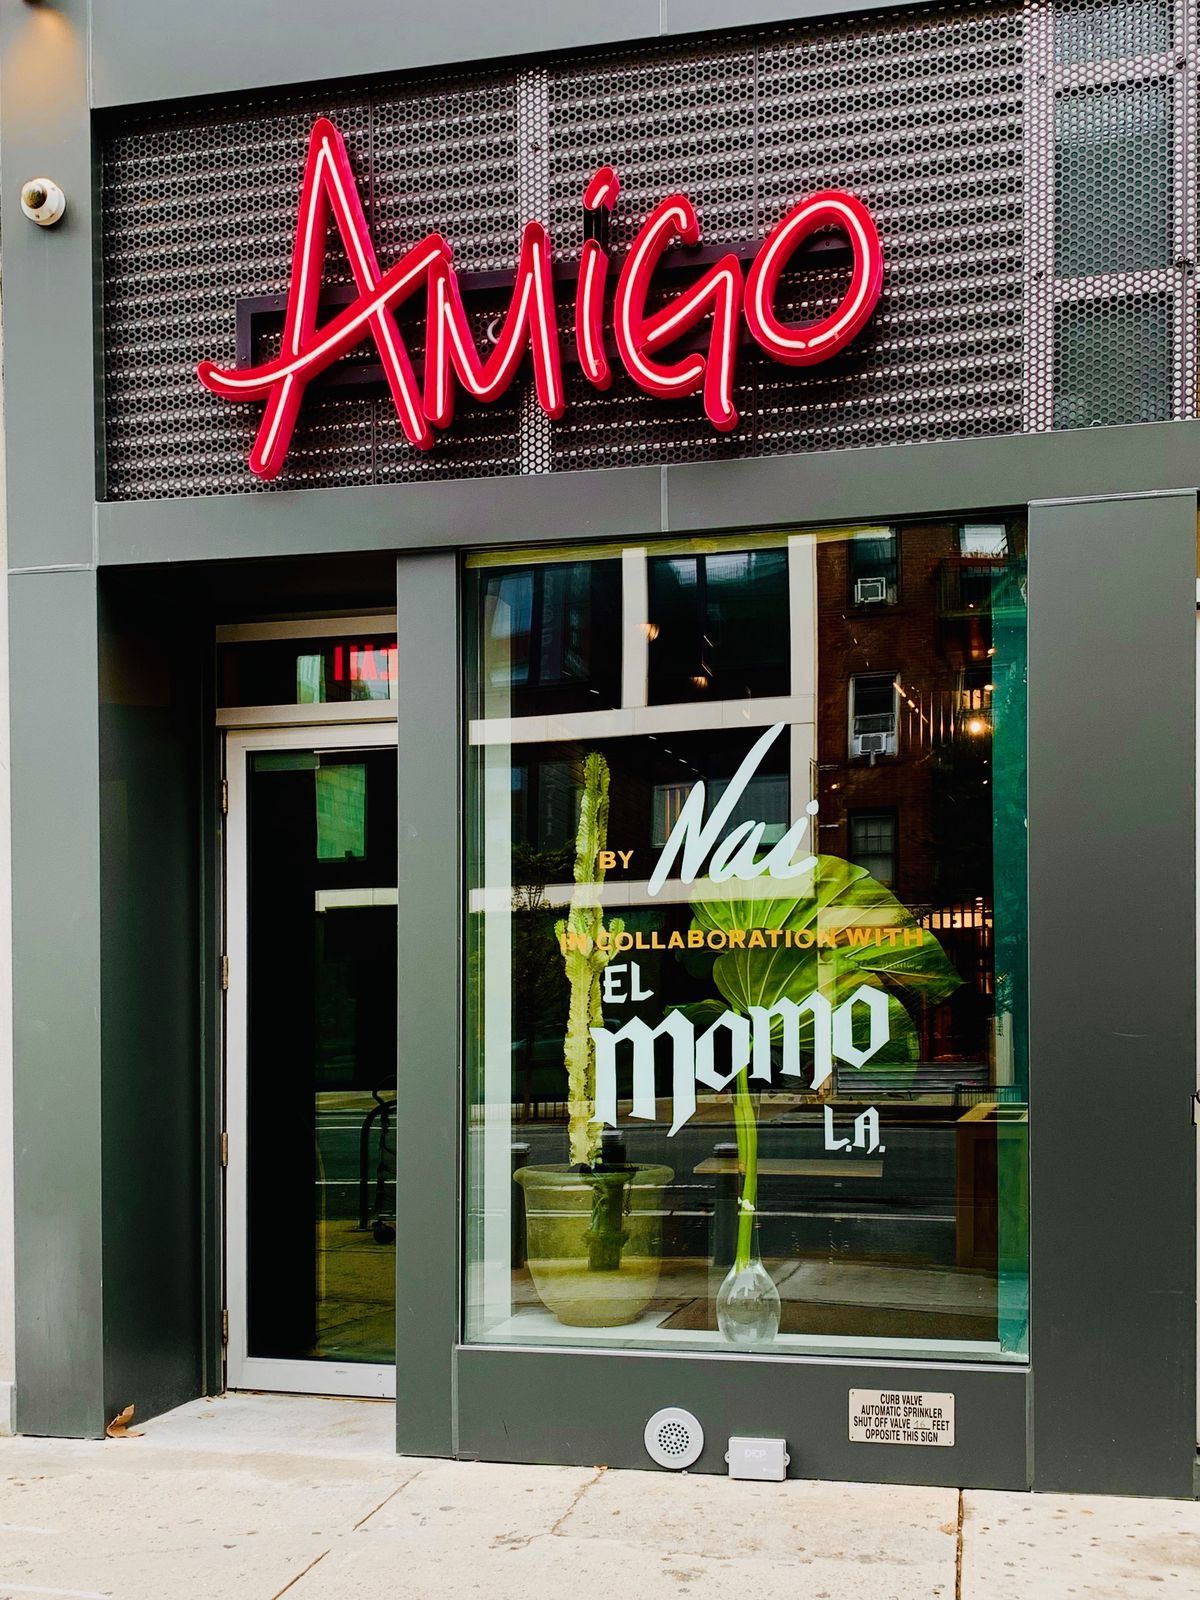 The dark exterior of the restaurant with Amigo in bright red letters above the doorway